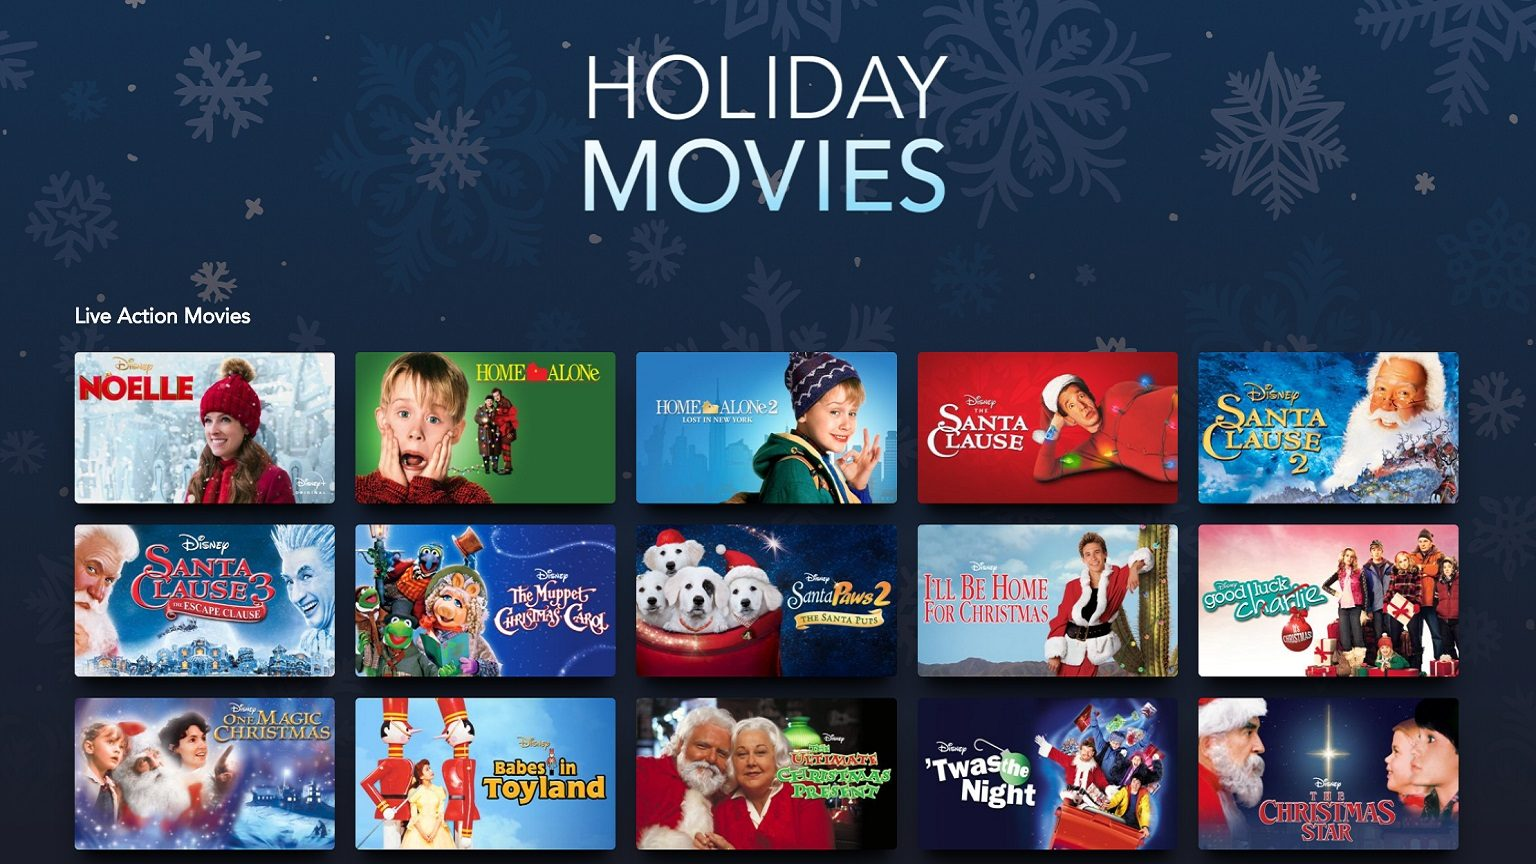 Disney+ Holiday movie selection